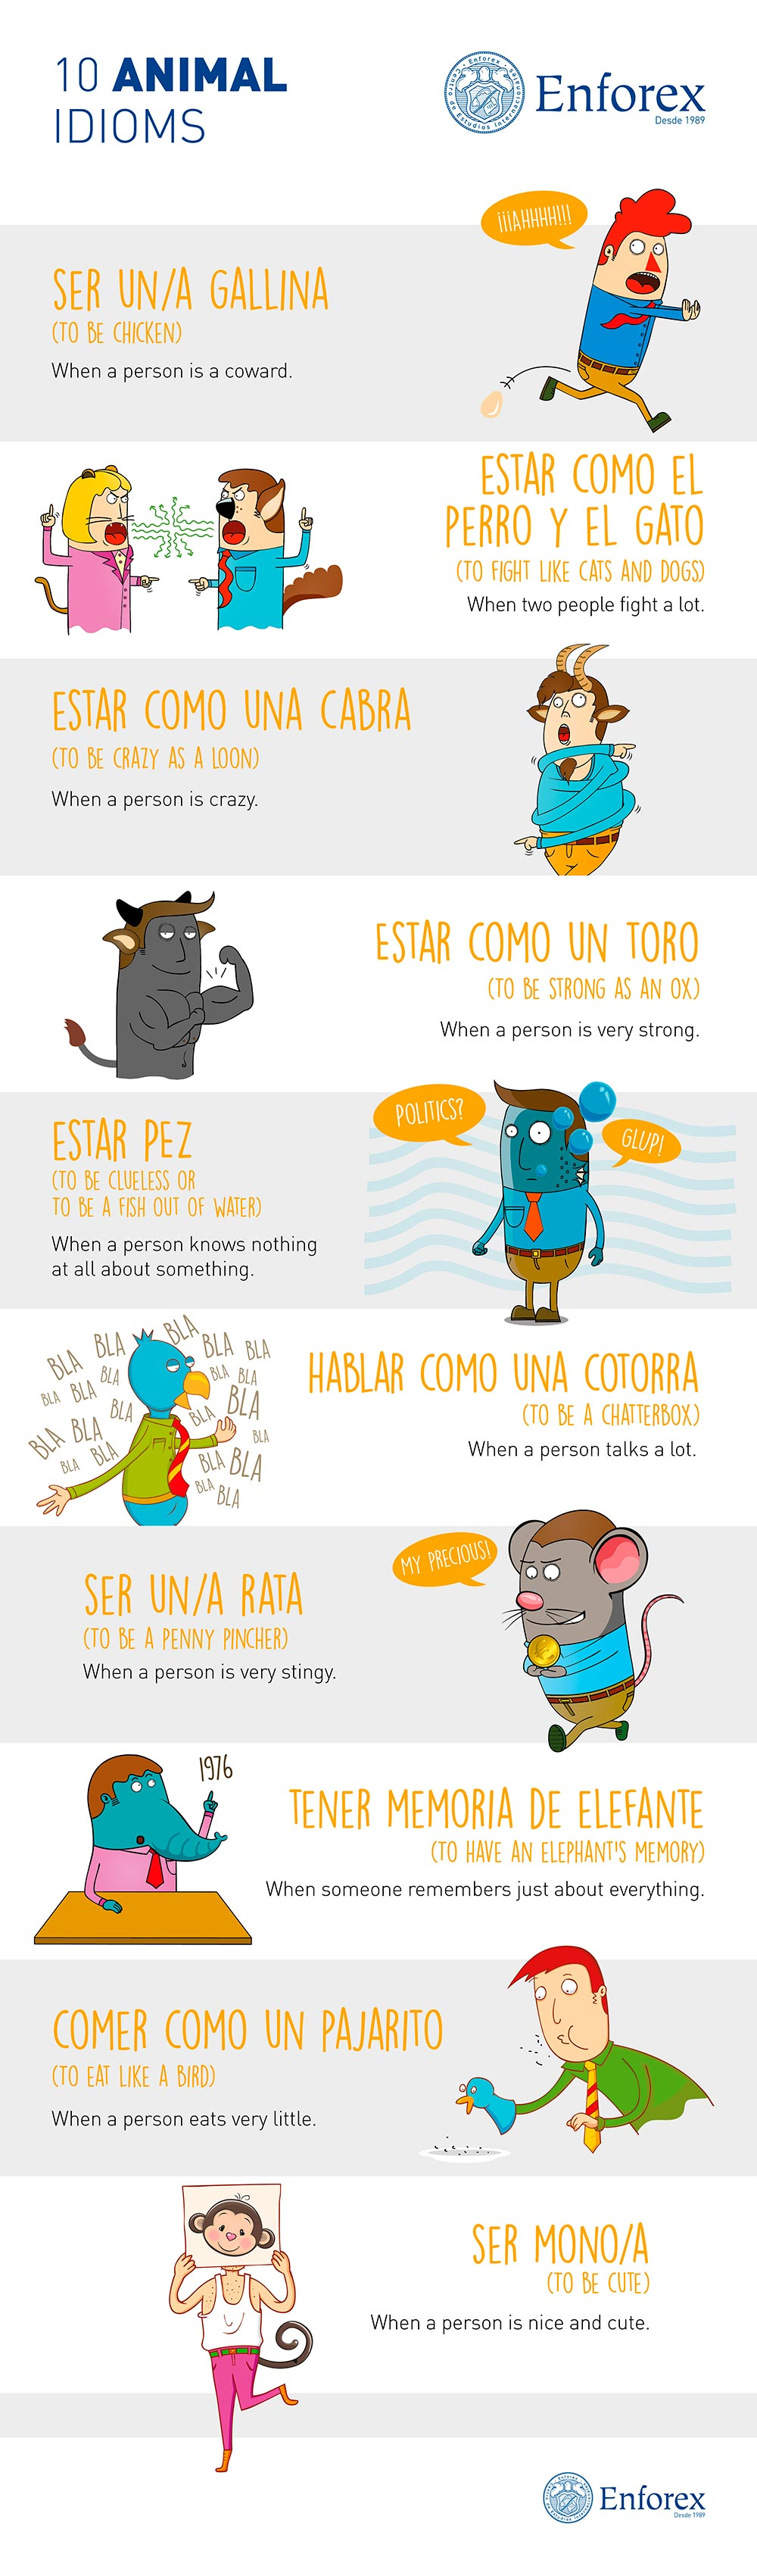 animal idioms some concepts in spanish however are completely different than their english language equivalents take a look at the infographic to help you learn and